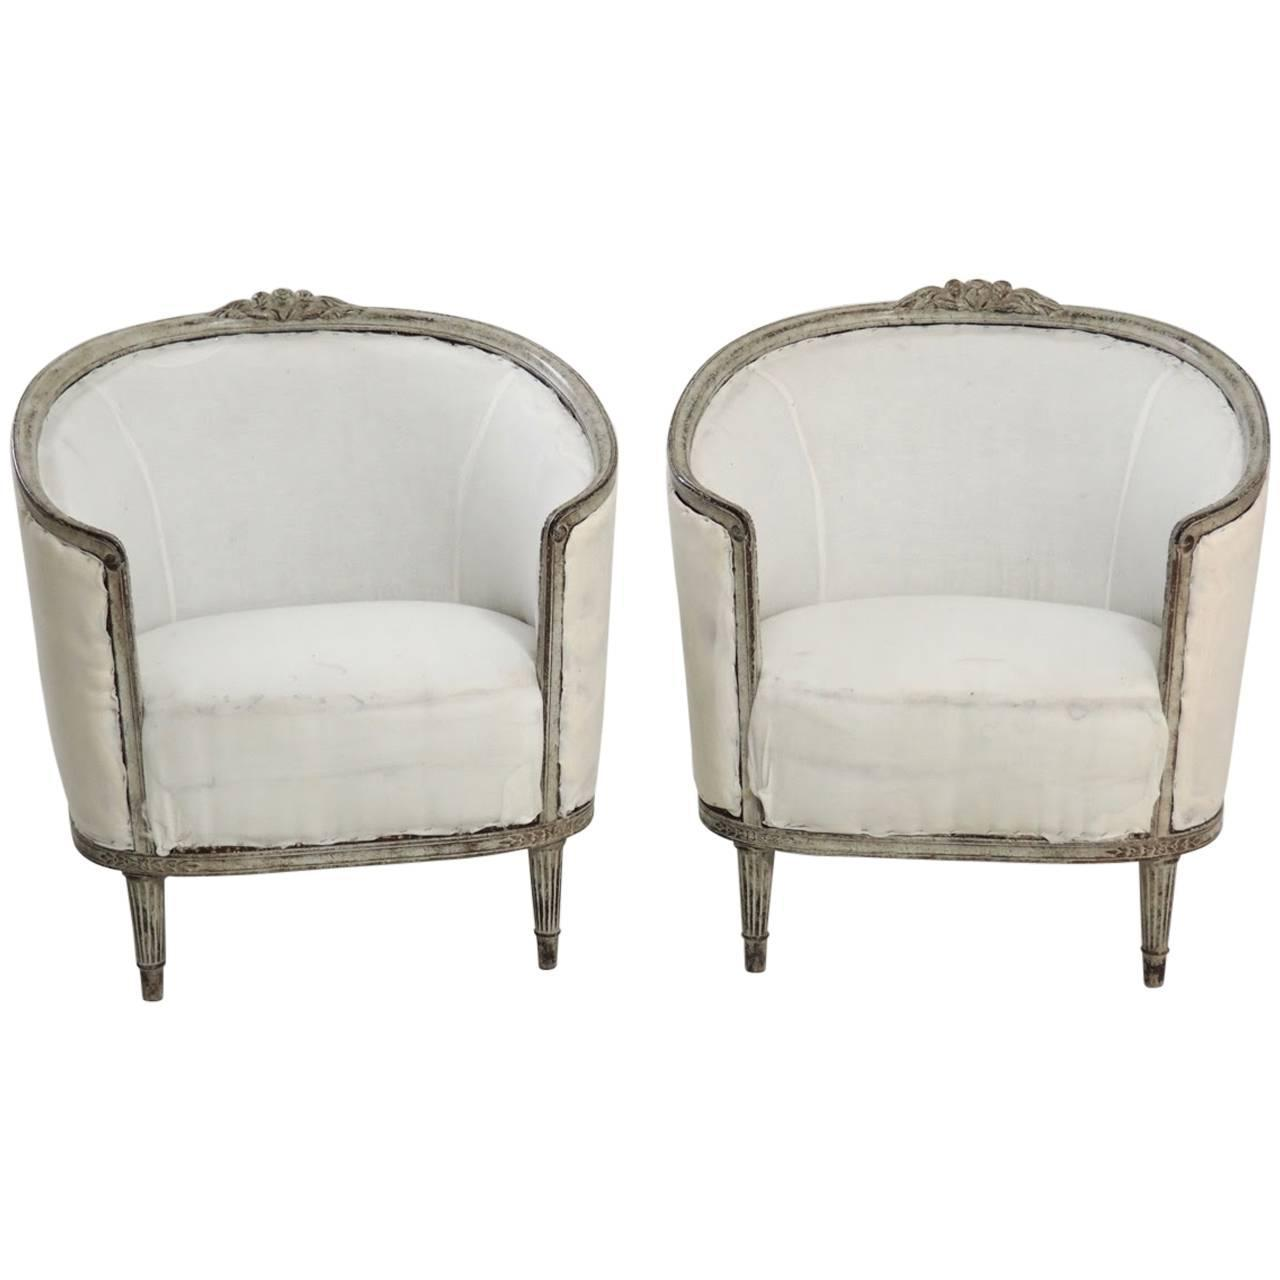 19th Century Pair Of Swedish Gustavian Style Barrel Back Bergere Chairs